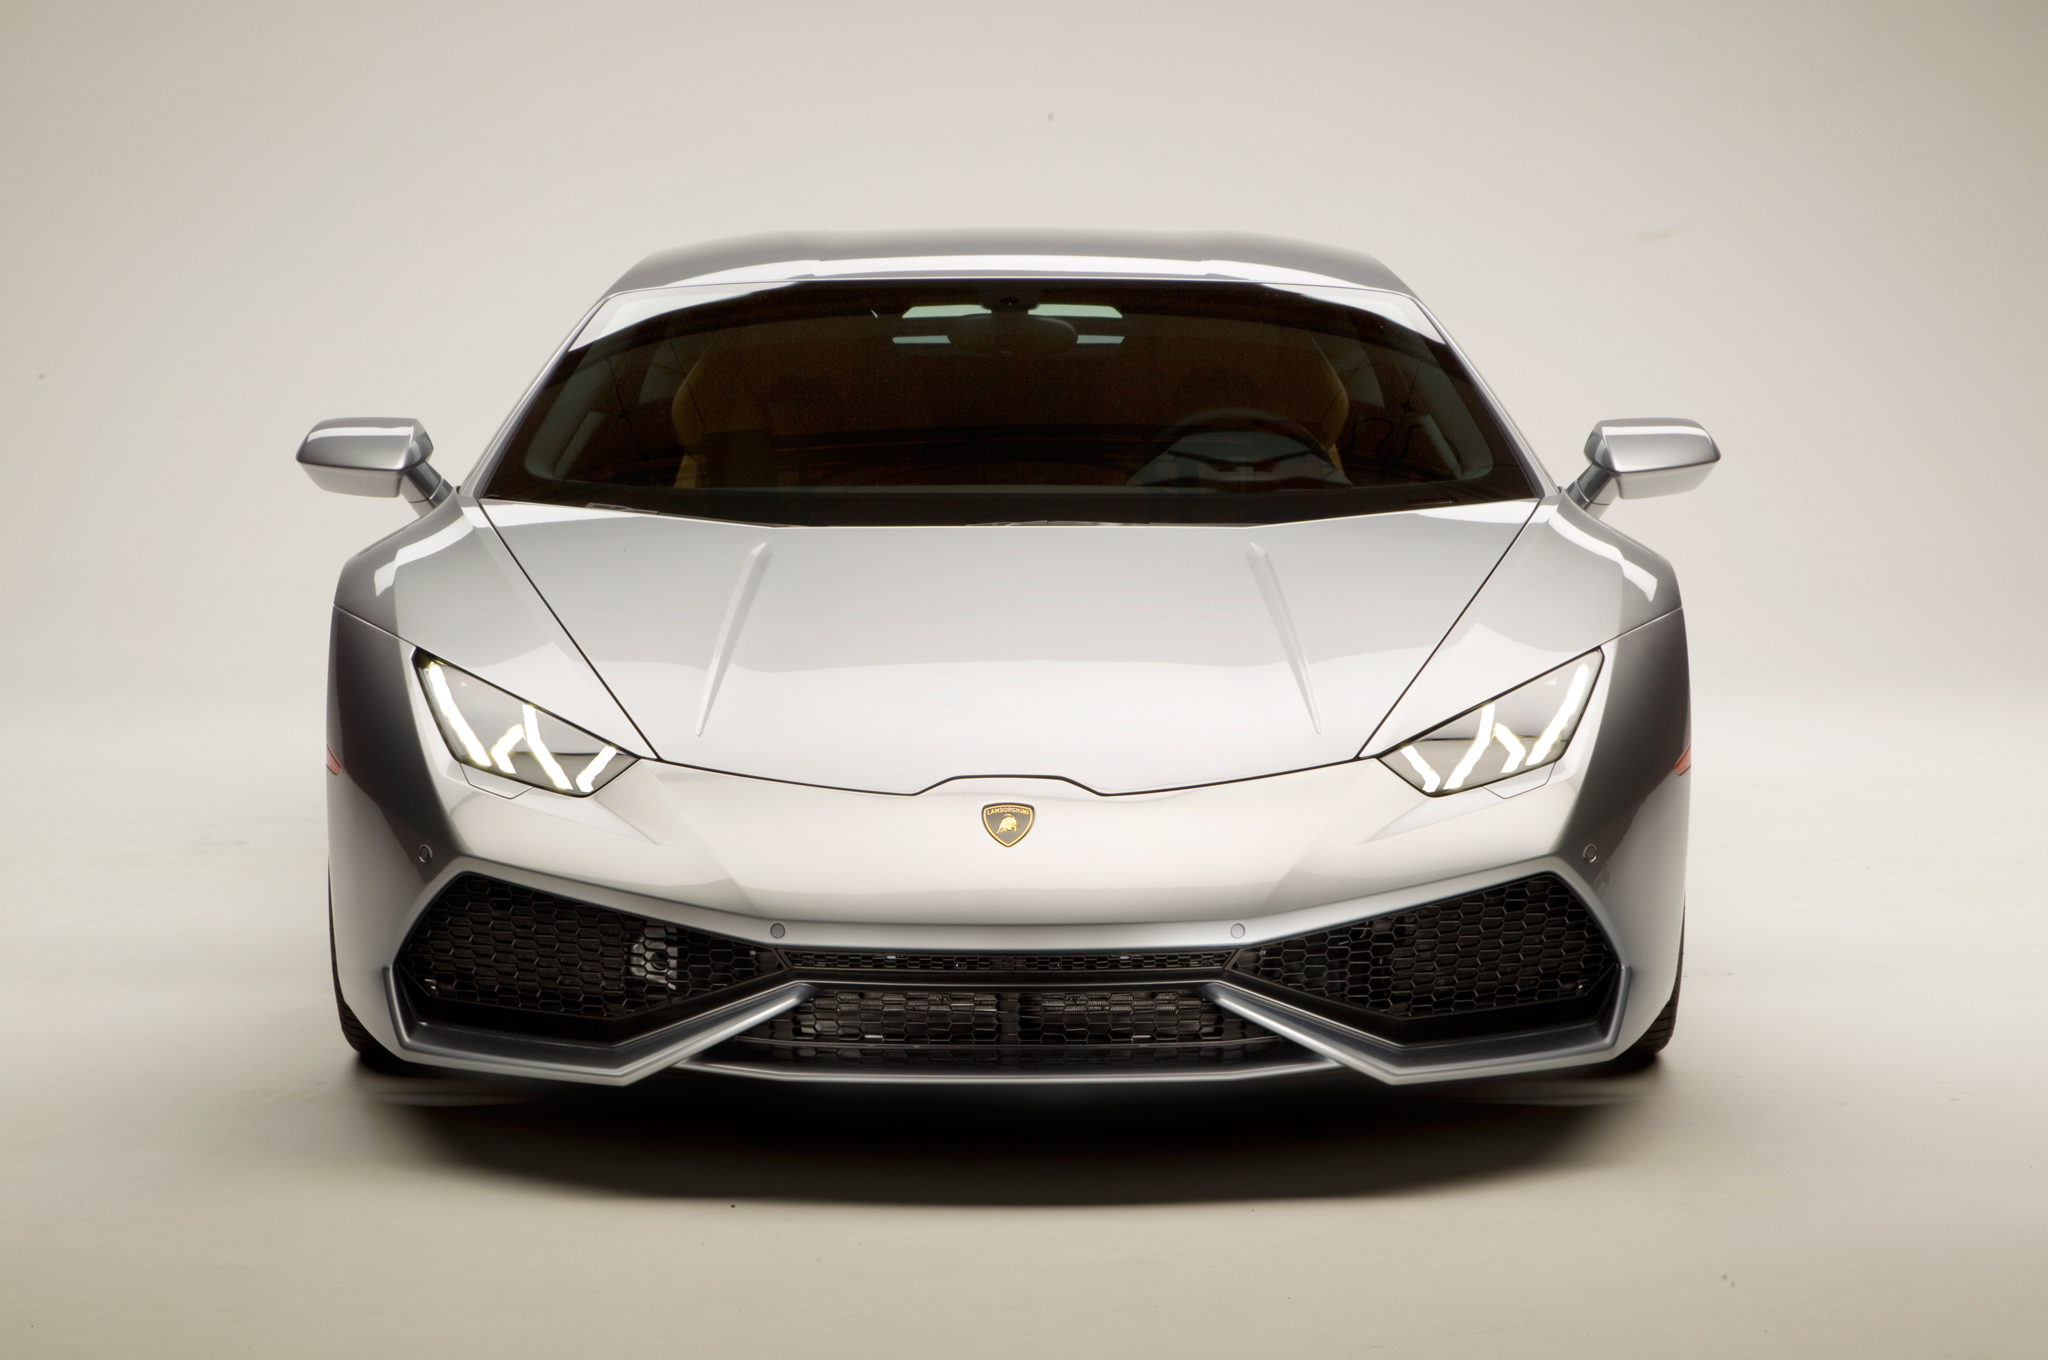 Hd Car Wallpapers For Mobile 28 Wallpapers: 2015 Lamborghini Huracan 28 Free Hd Car Wallpaper